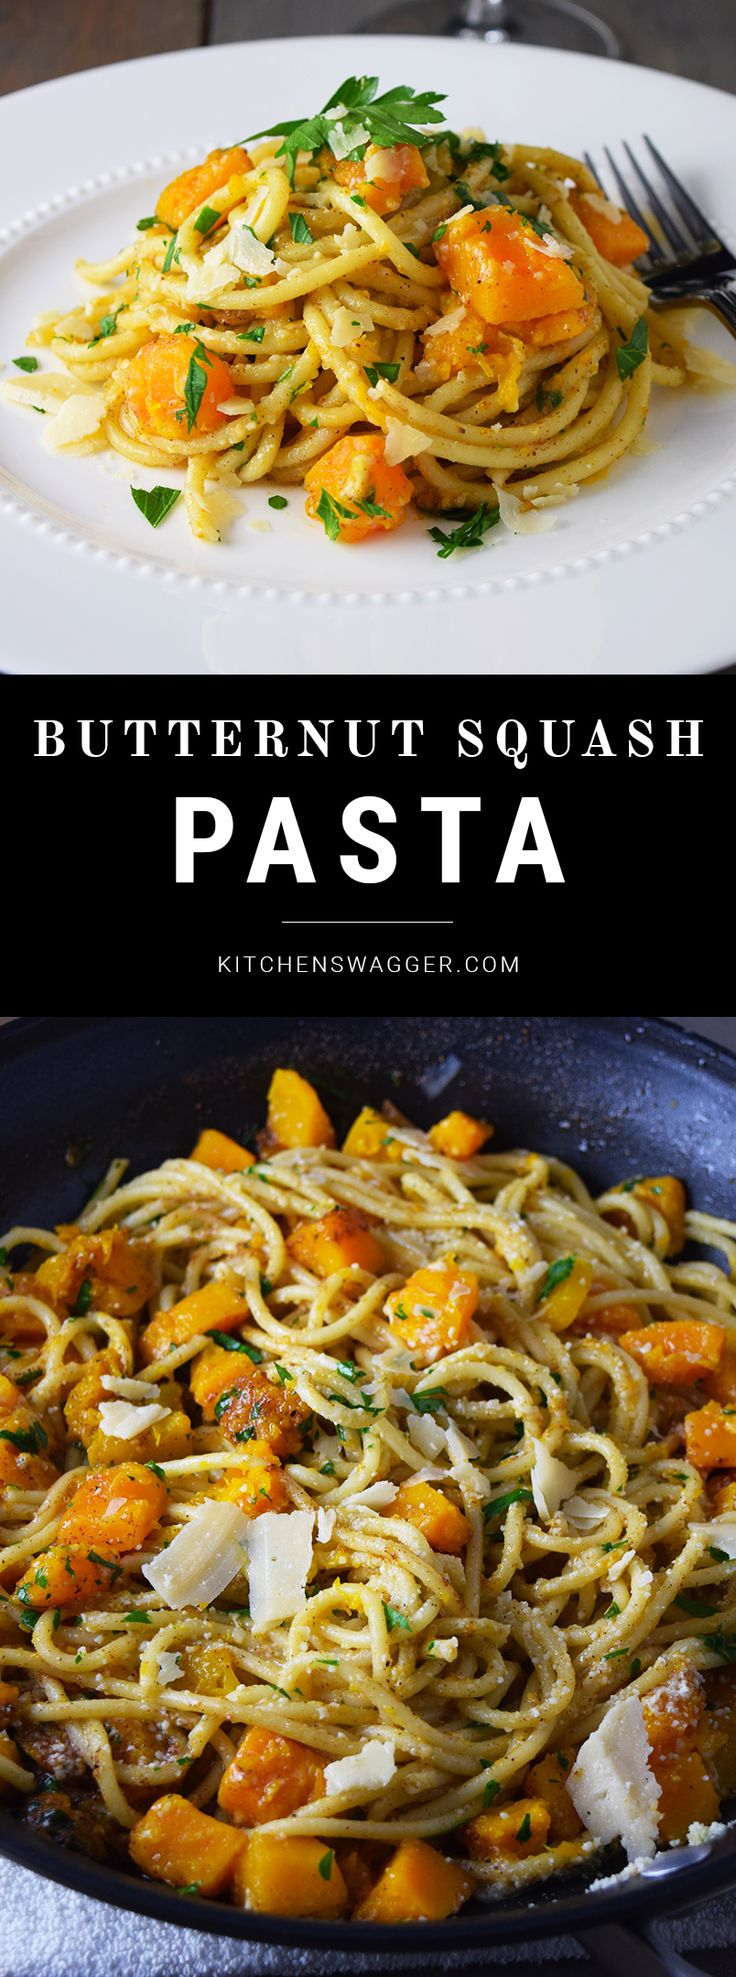 Easy butternut squash pasta dish made with brown butter, olive oil, brown sugar, and fresh butternut squash.